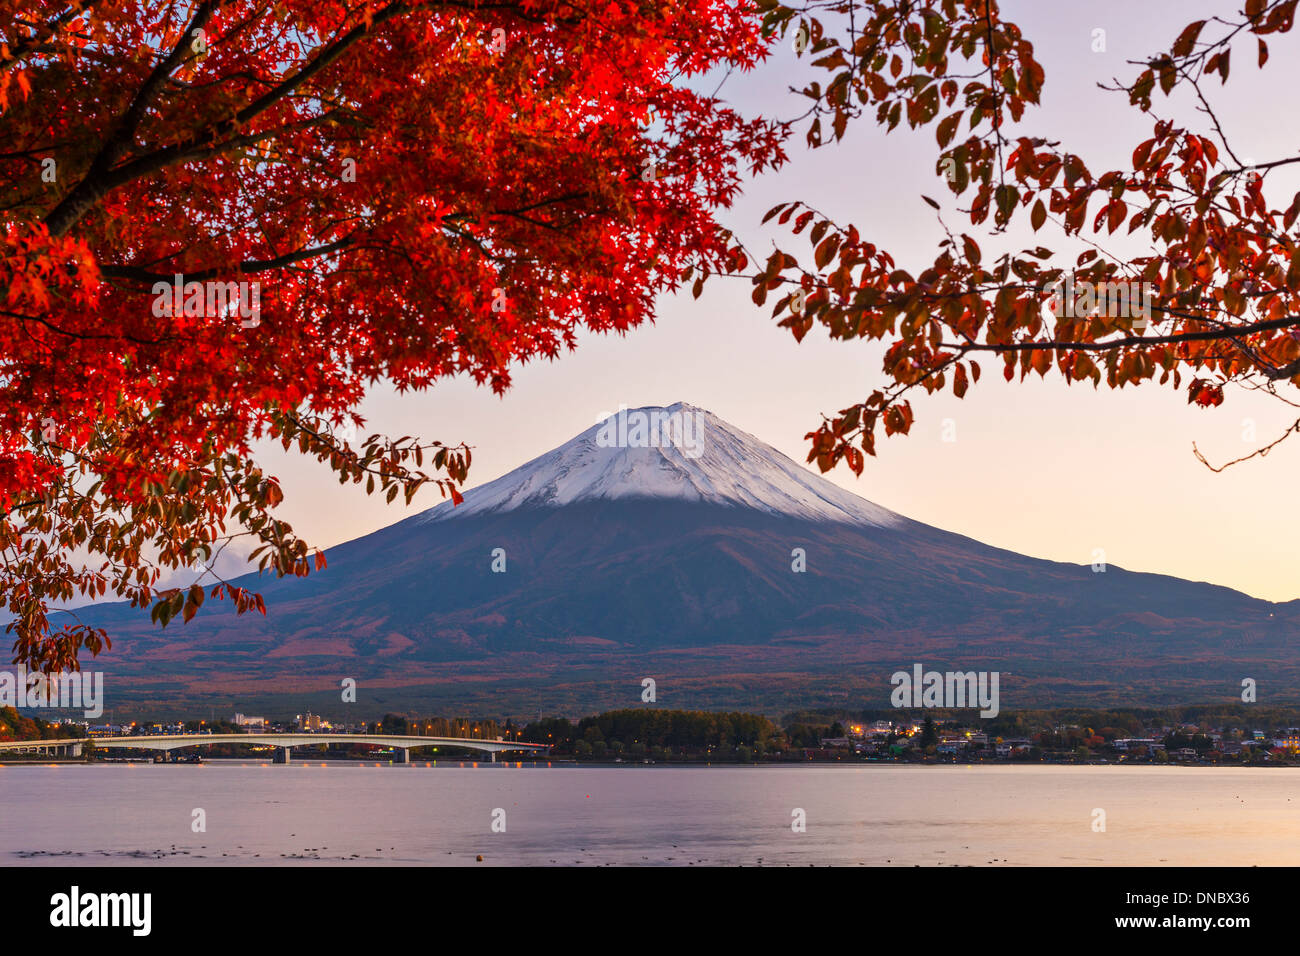 Mt. Fuji with fall Foliage in Japan. - Stock Image